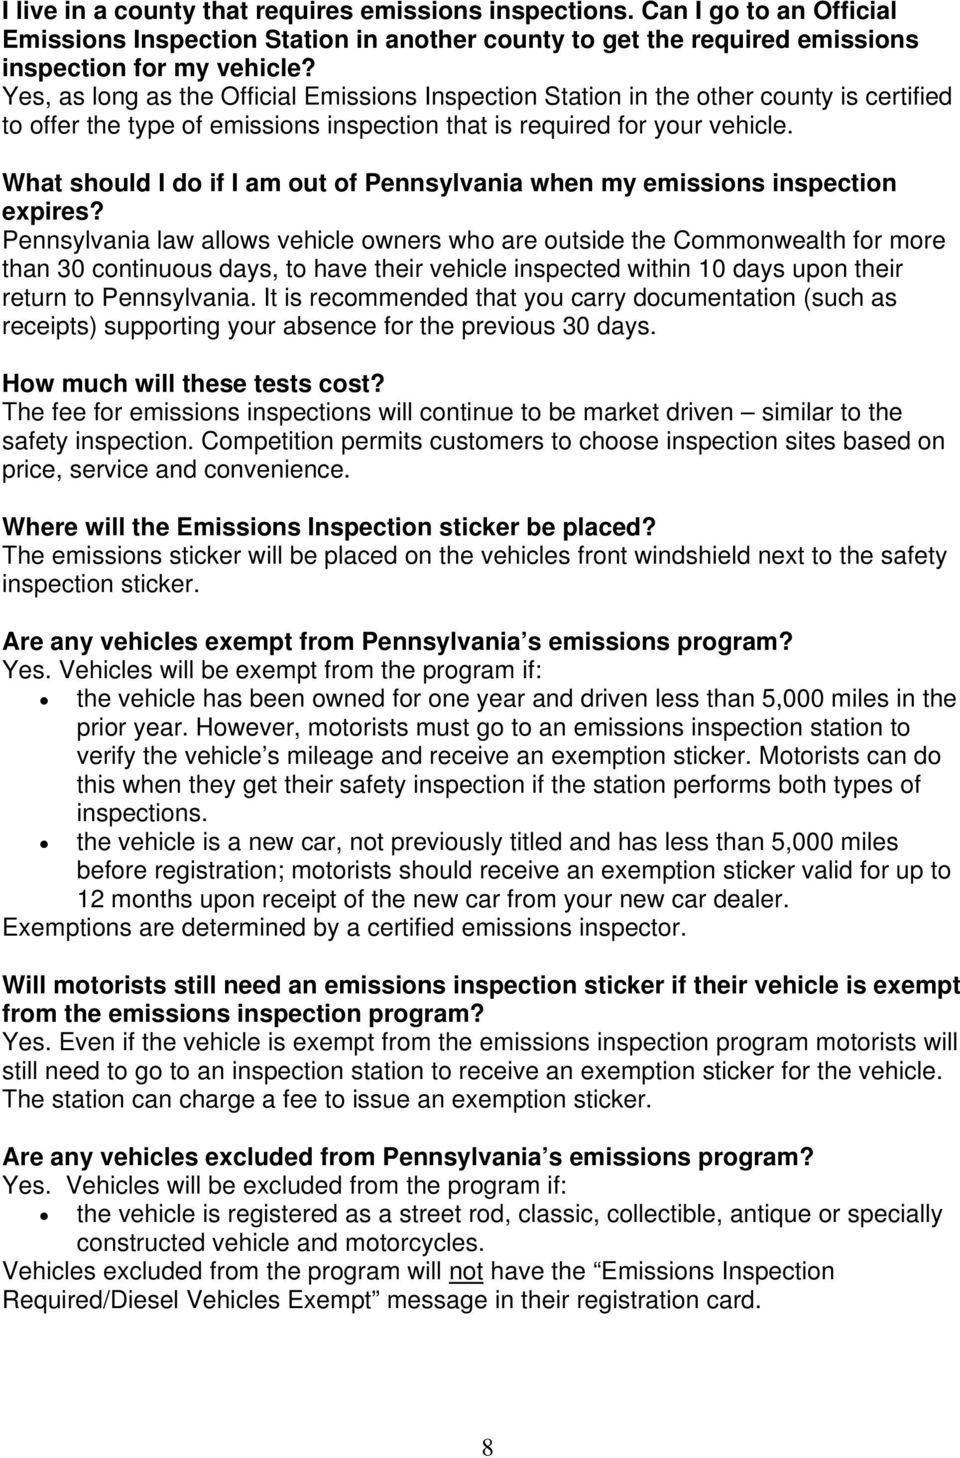 What should I do if I am out of Pennsylvania when my emissions inspection expires?